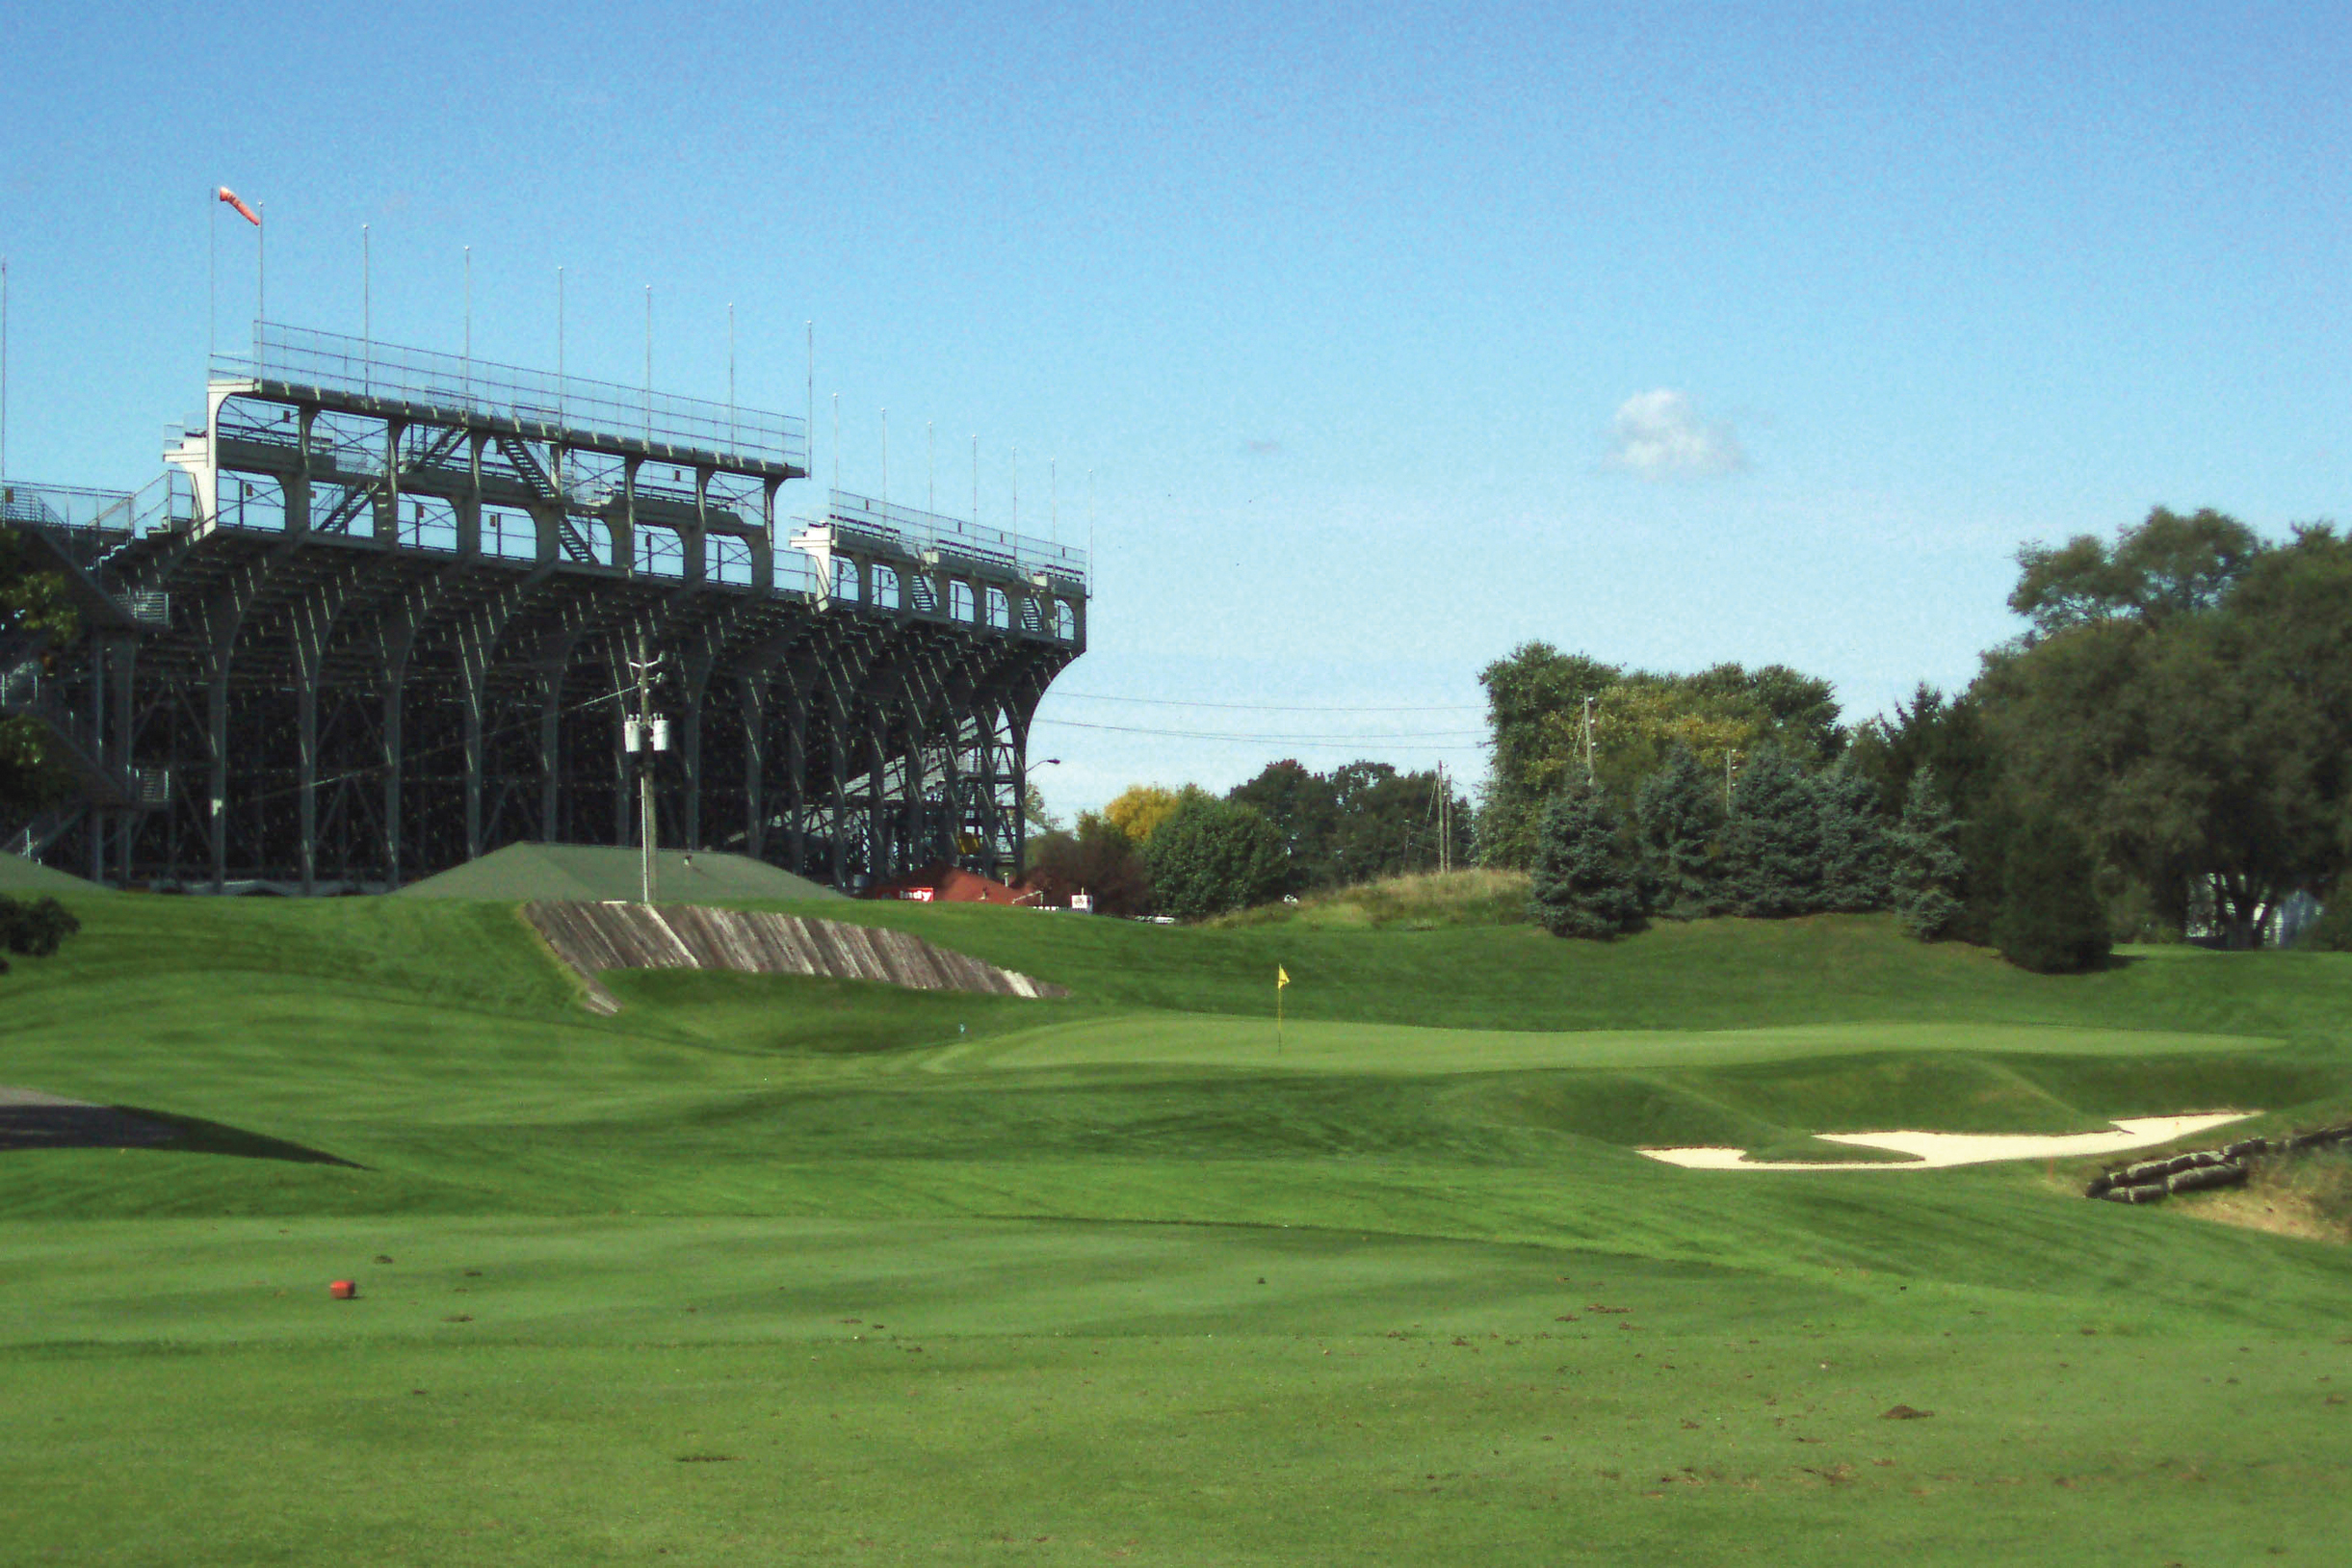 No. 13 at Brickyard Crossings with the Indianapolis Motor Speedway in the background.